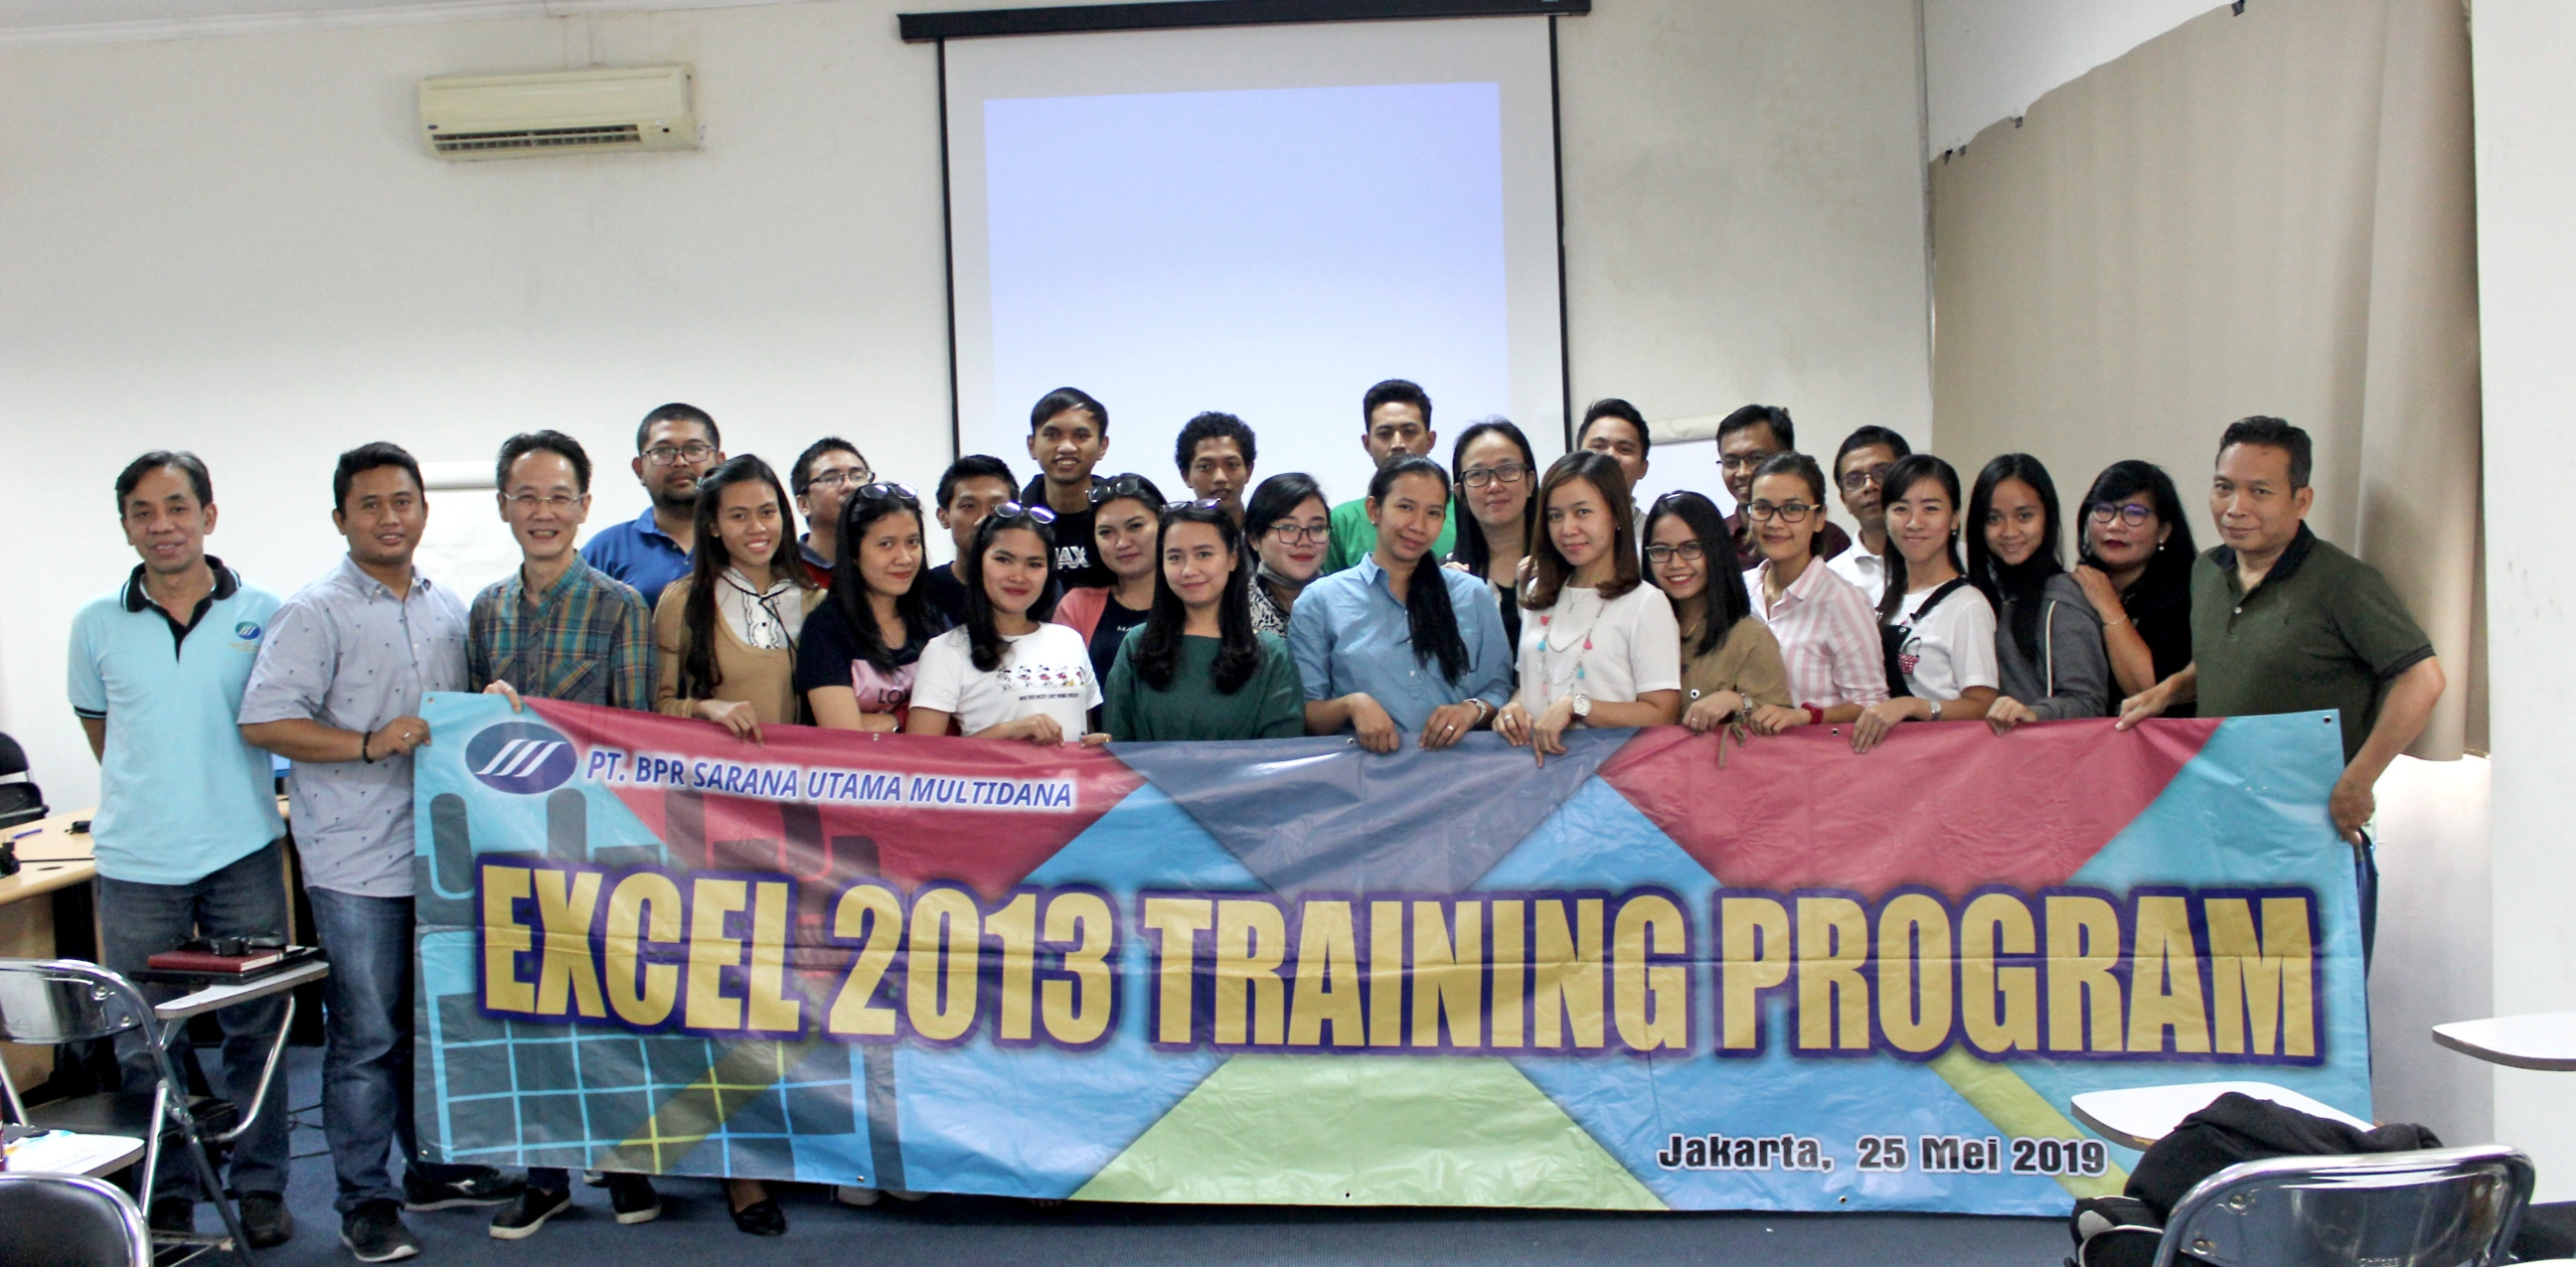 Excel 2013 Training Program